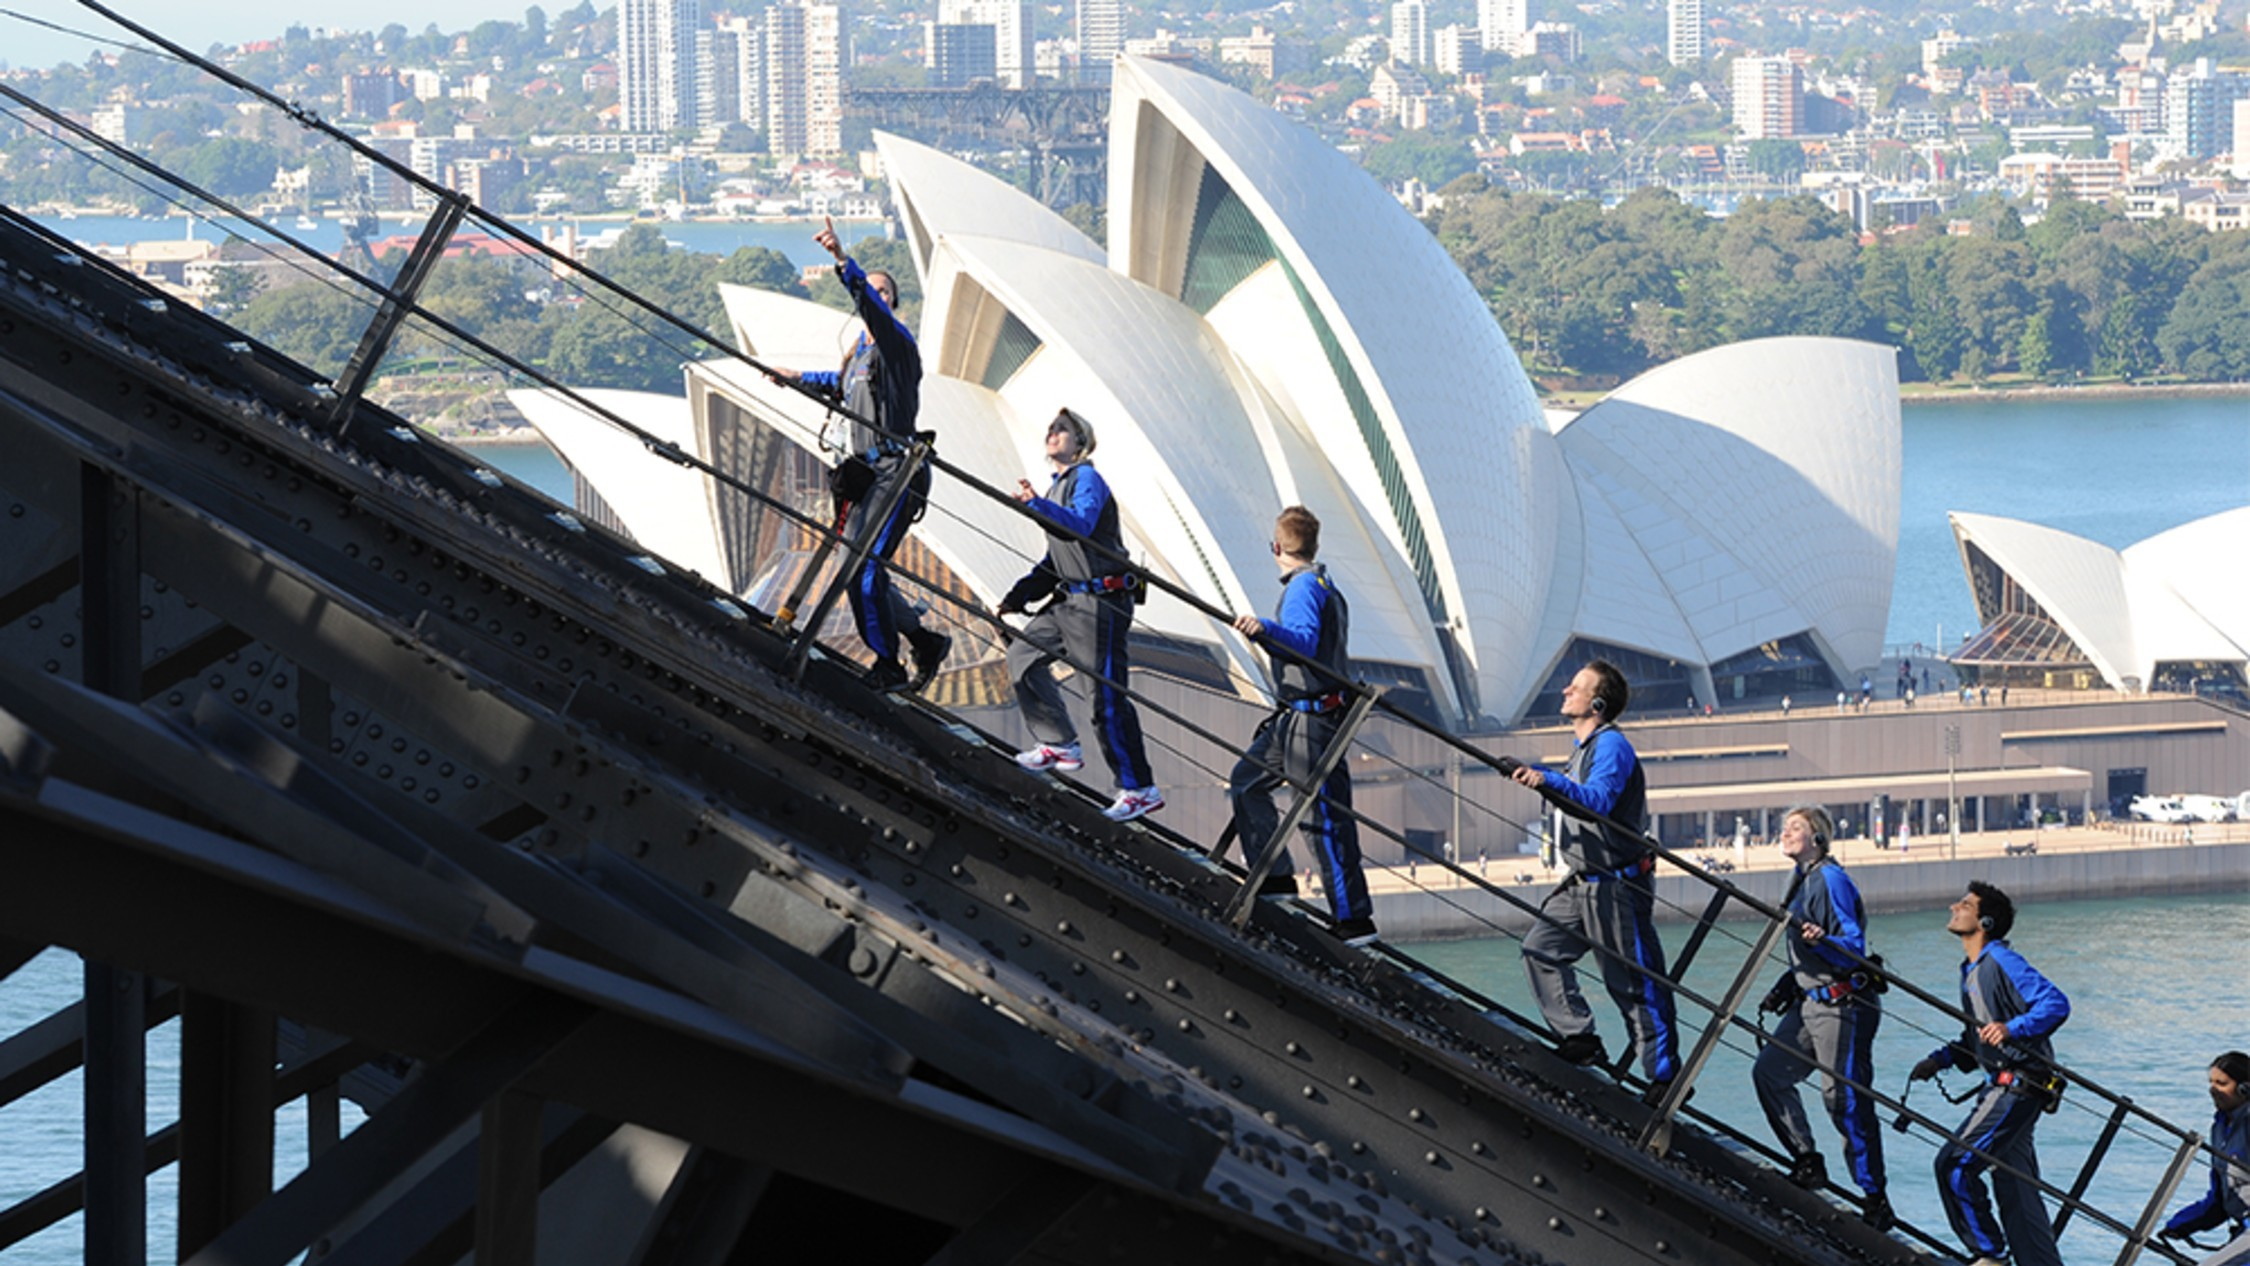 People scaling the Harbour Bridge on the BridgeClimb